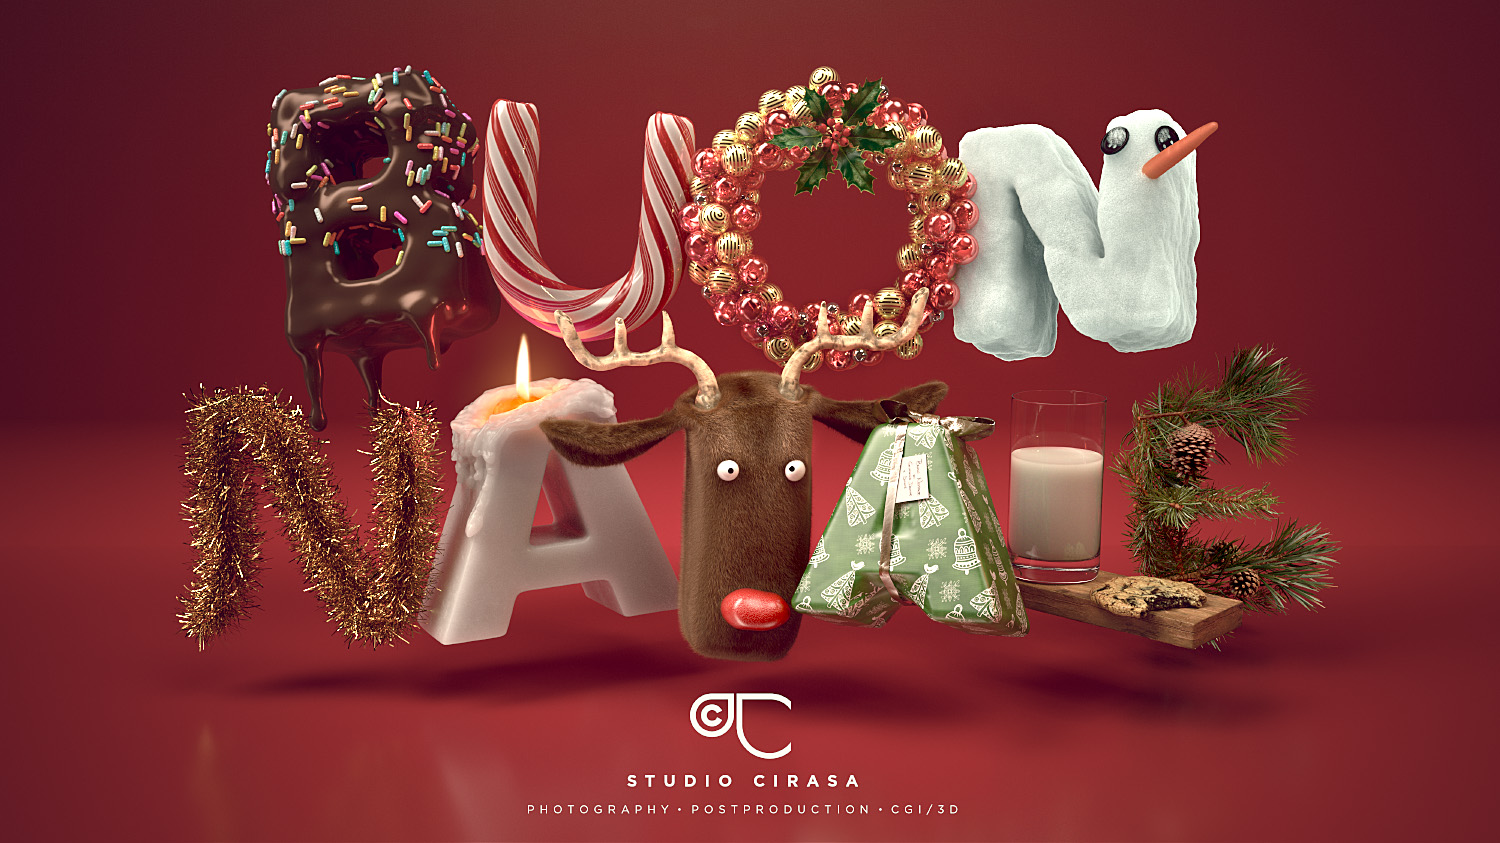 Buon Natale CGI 3D Illustration